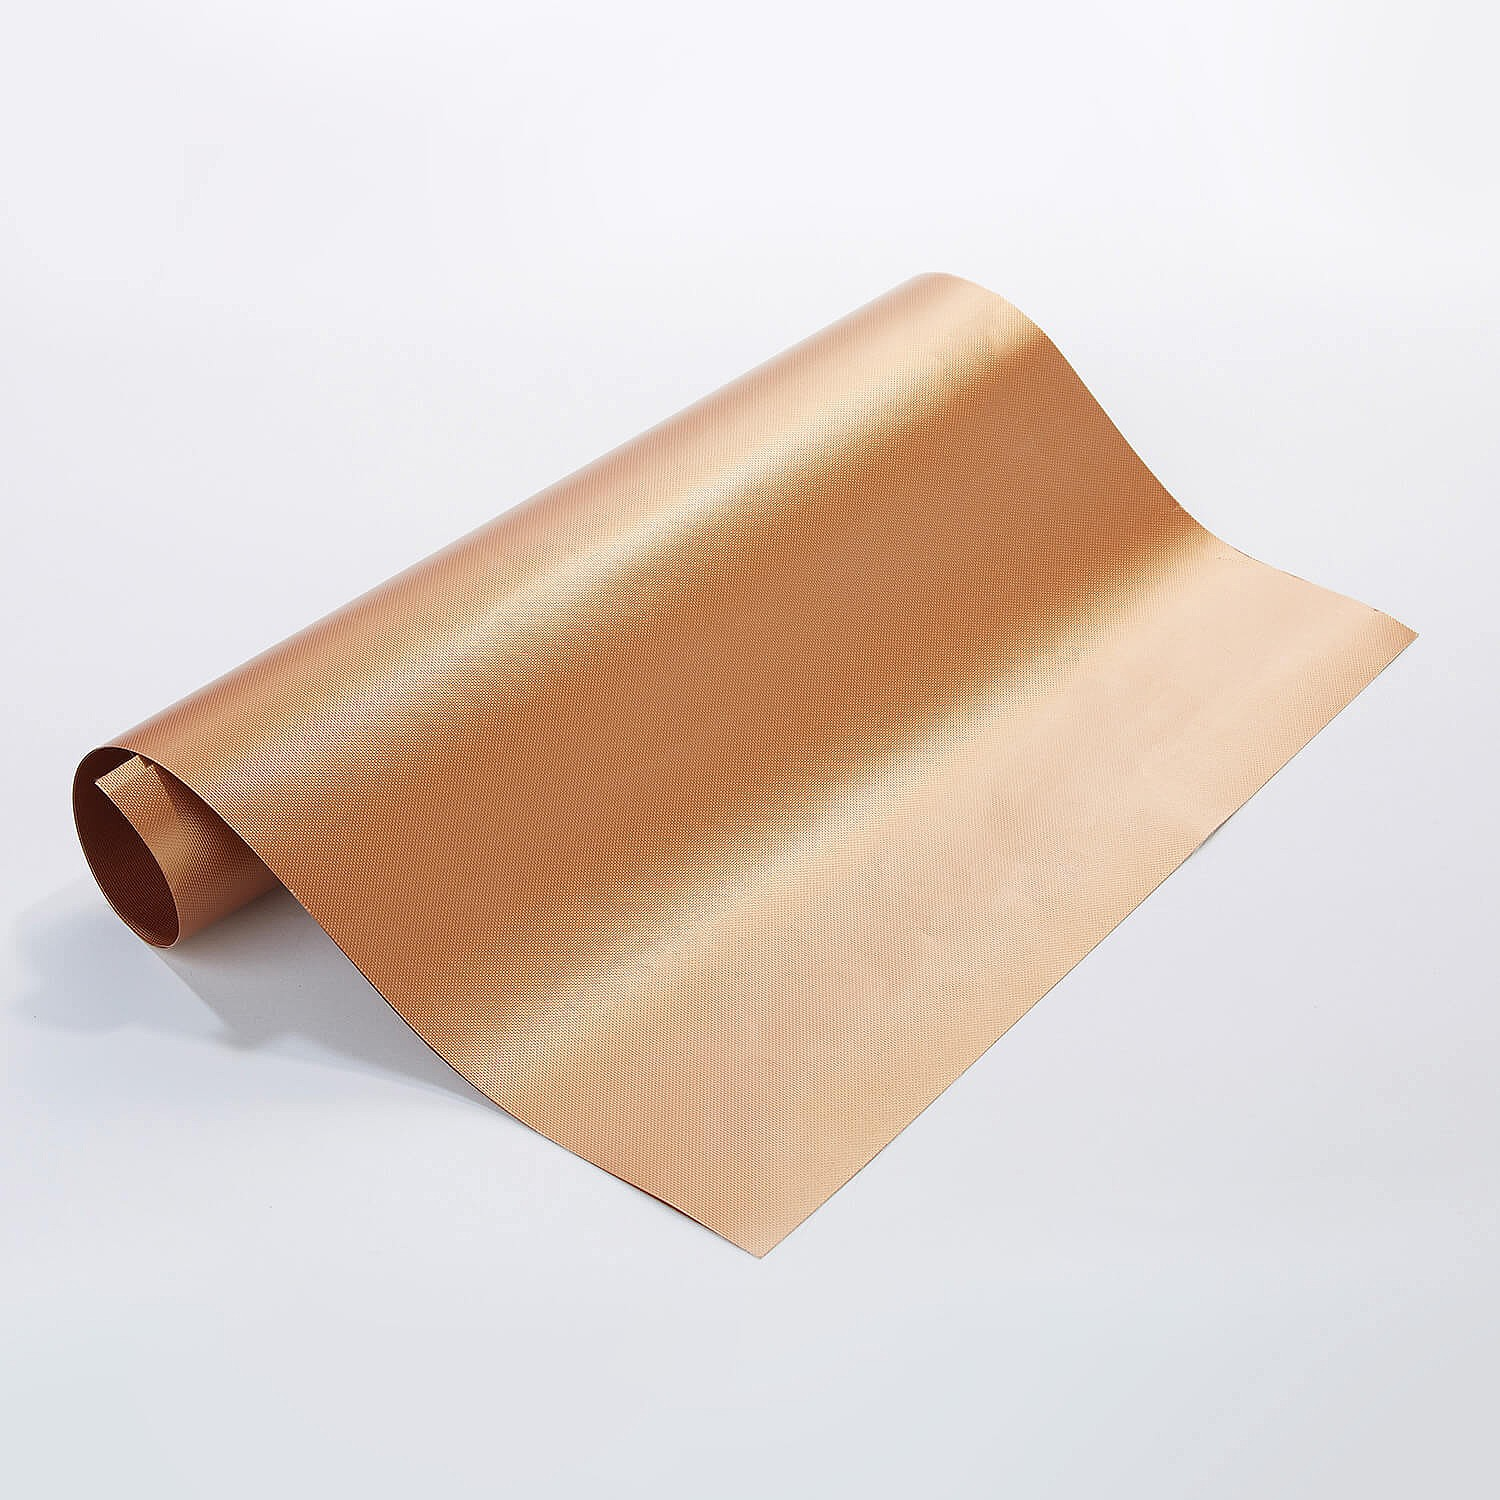 Copper King Oven Liners Set 2 by Coopers of Stortford